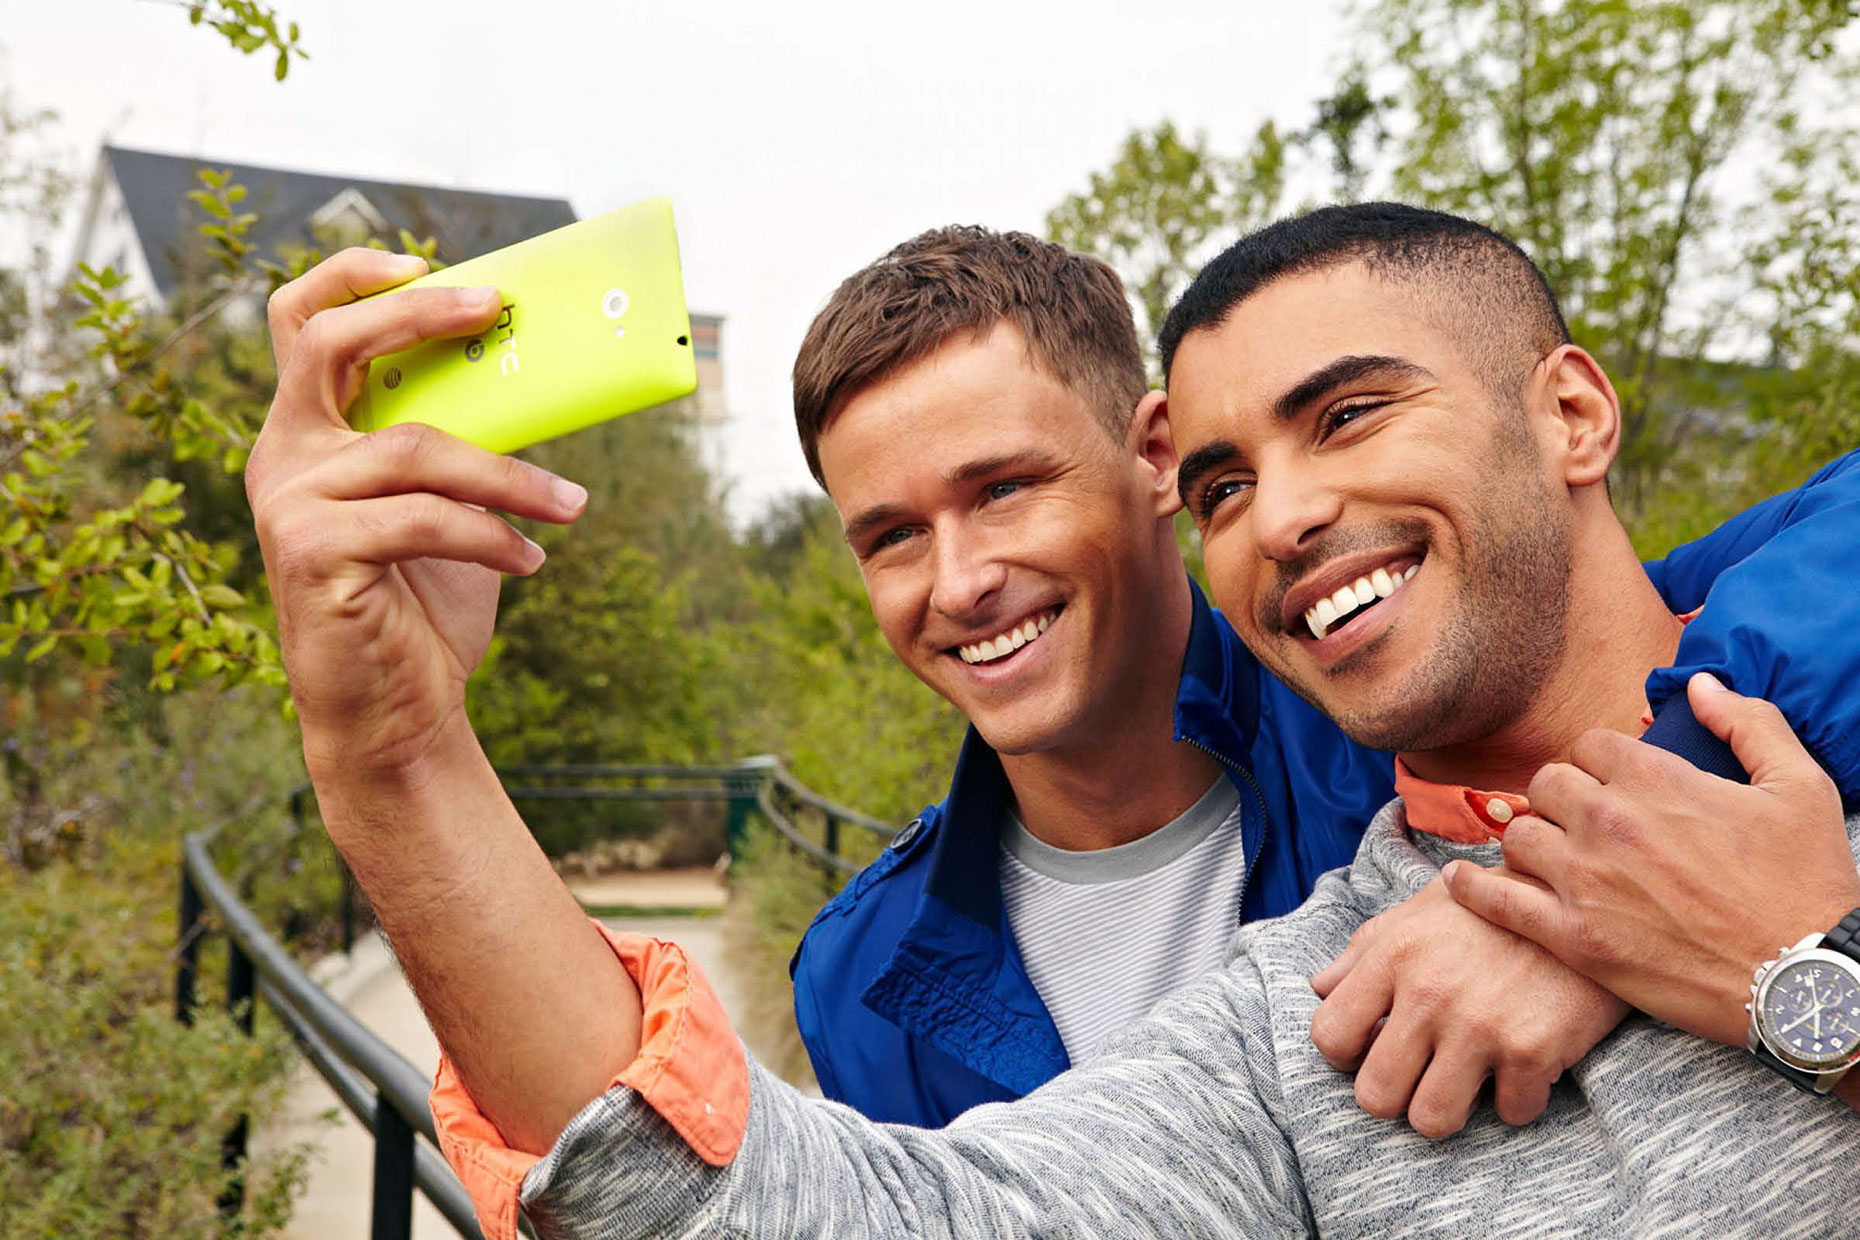 Photography_Lifestyle_Happy Gay Couple Taking Selfie-Tony Garcia